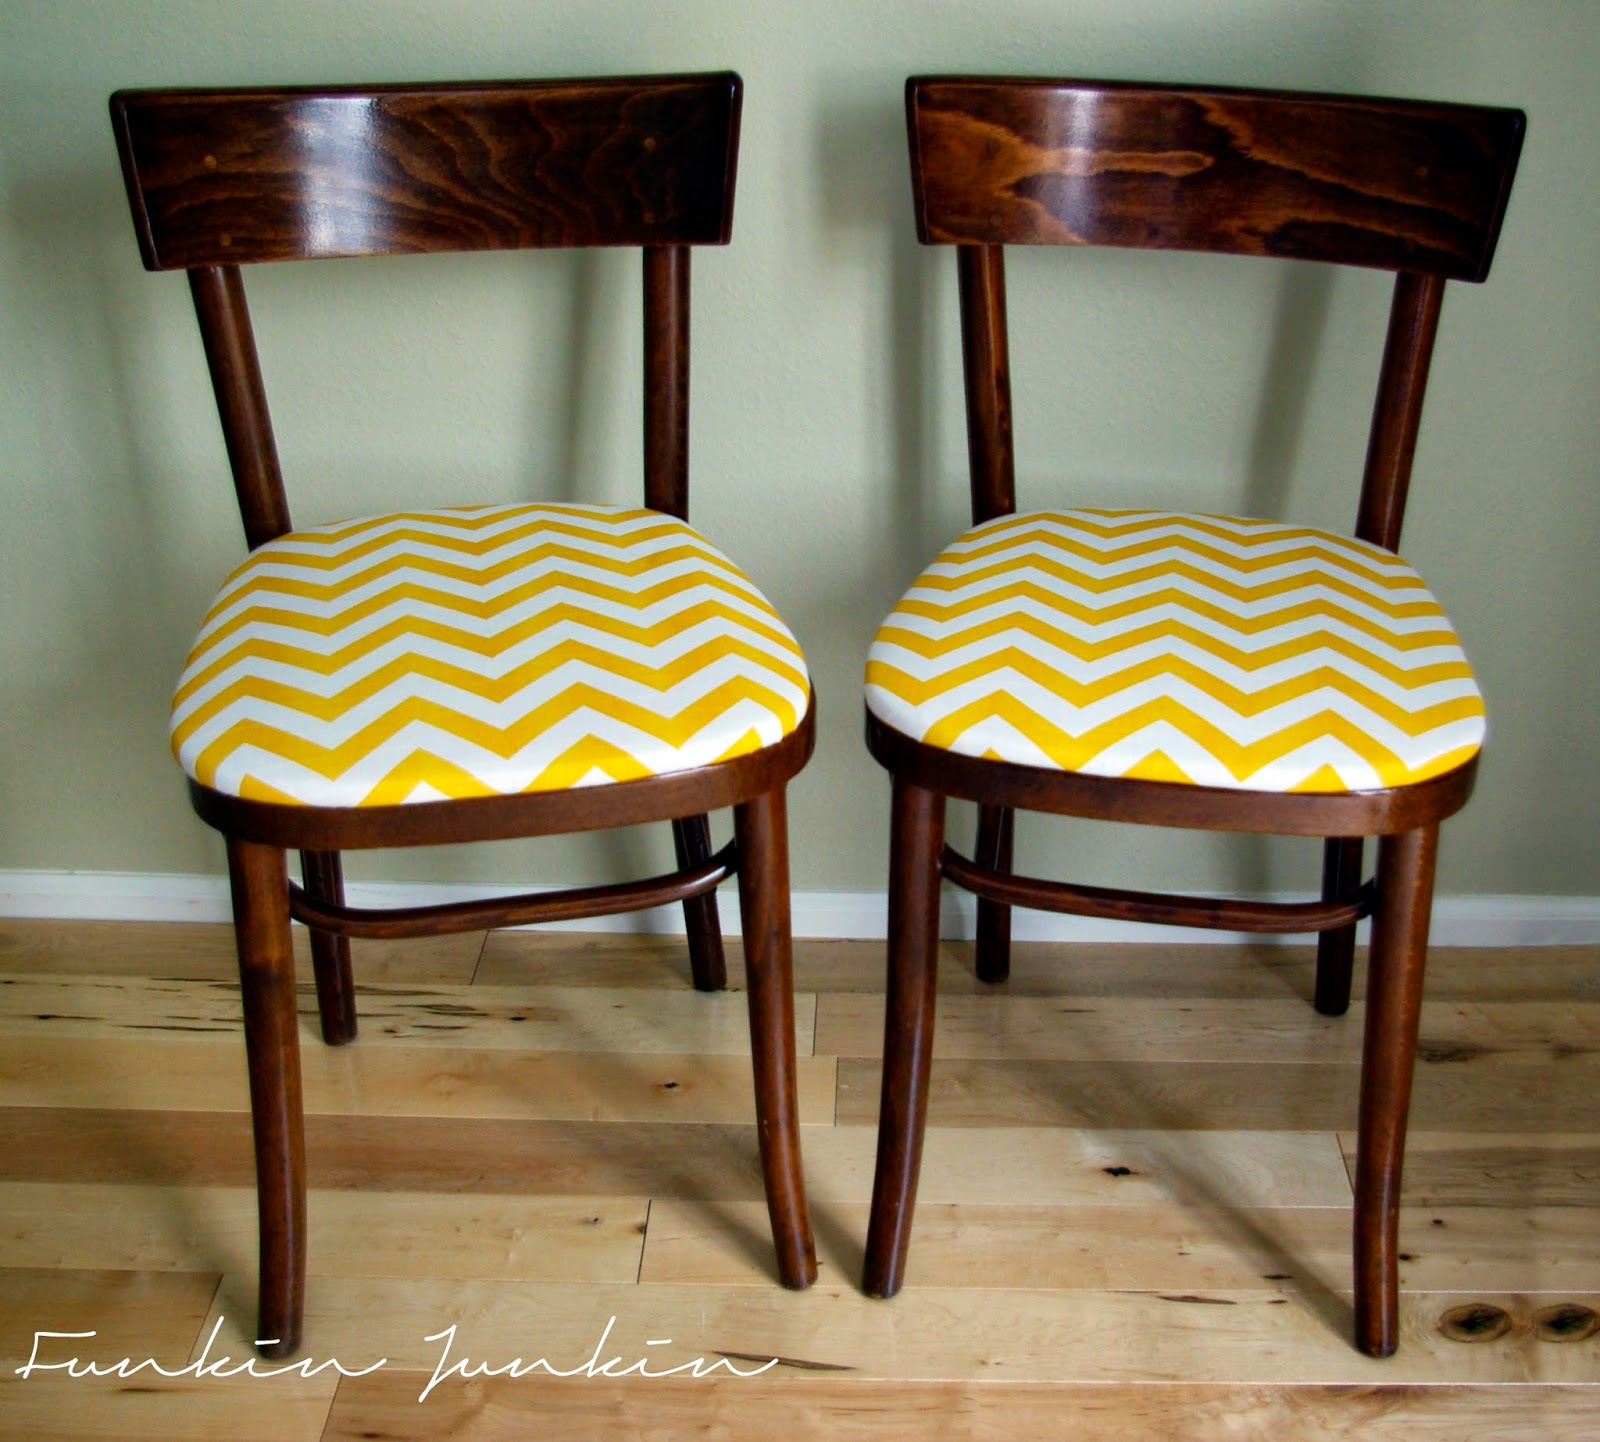 Thonet Bentwood Chairs With Chevron Seats